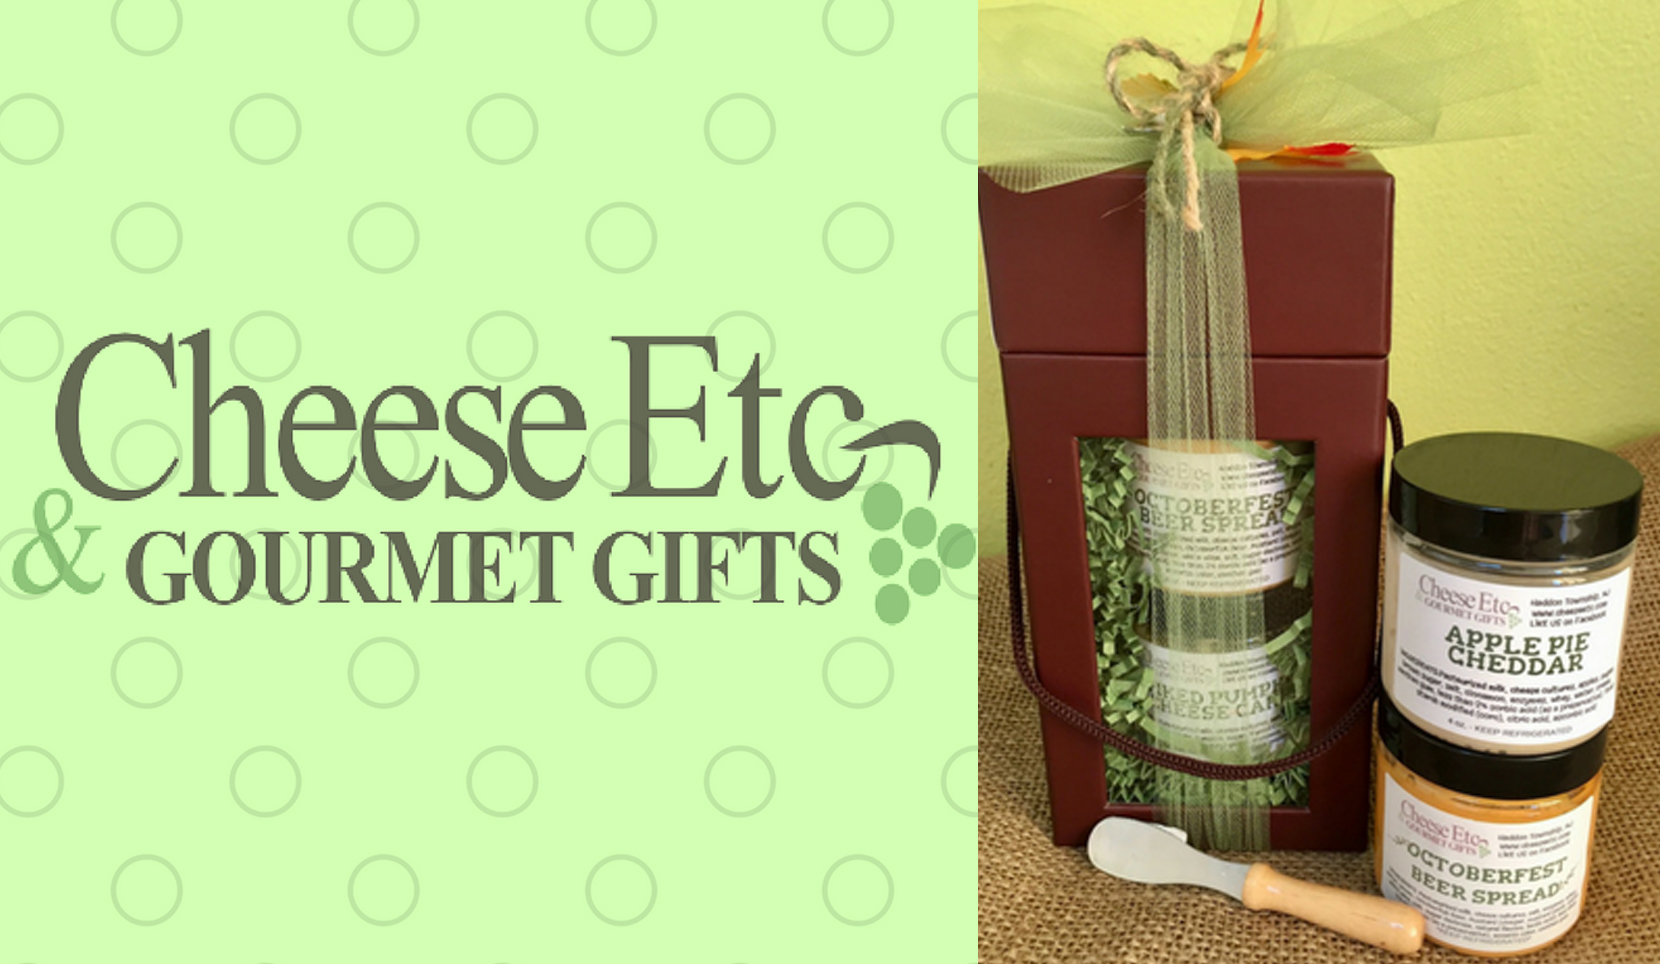 cheese etc gourmet gifts